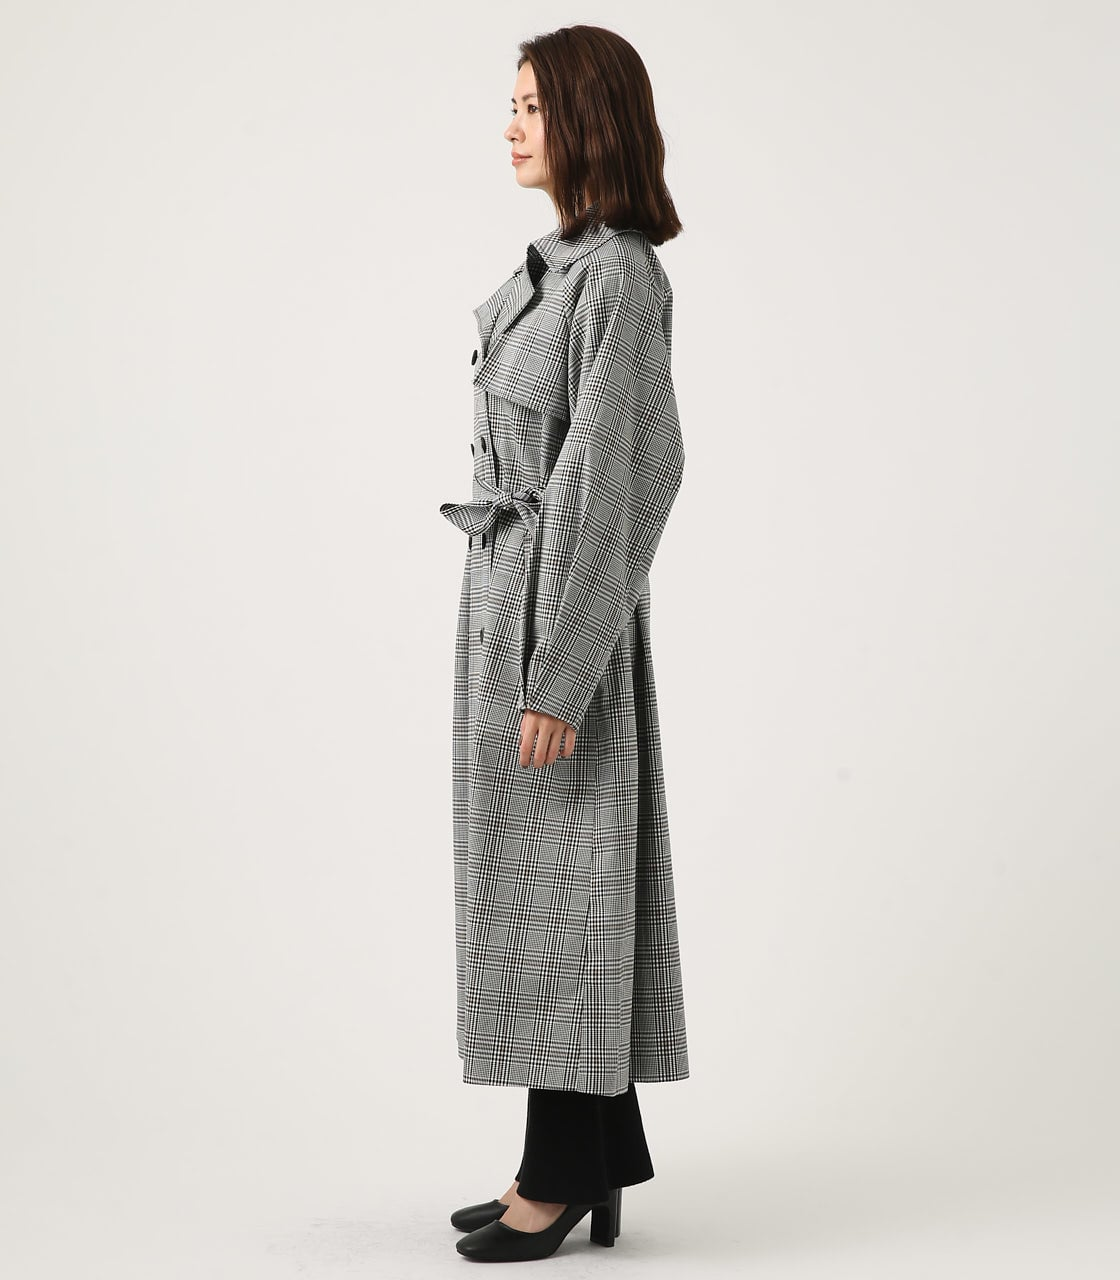 【AZUL BY MOUSSY】VOLUME SLEEVE LONG TRENCH COAT 詳細画像 柄BLK 6